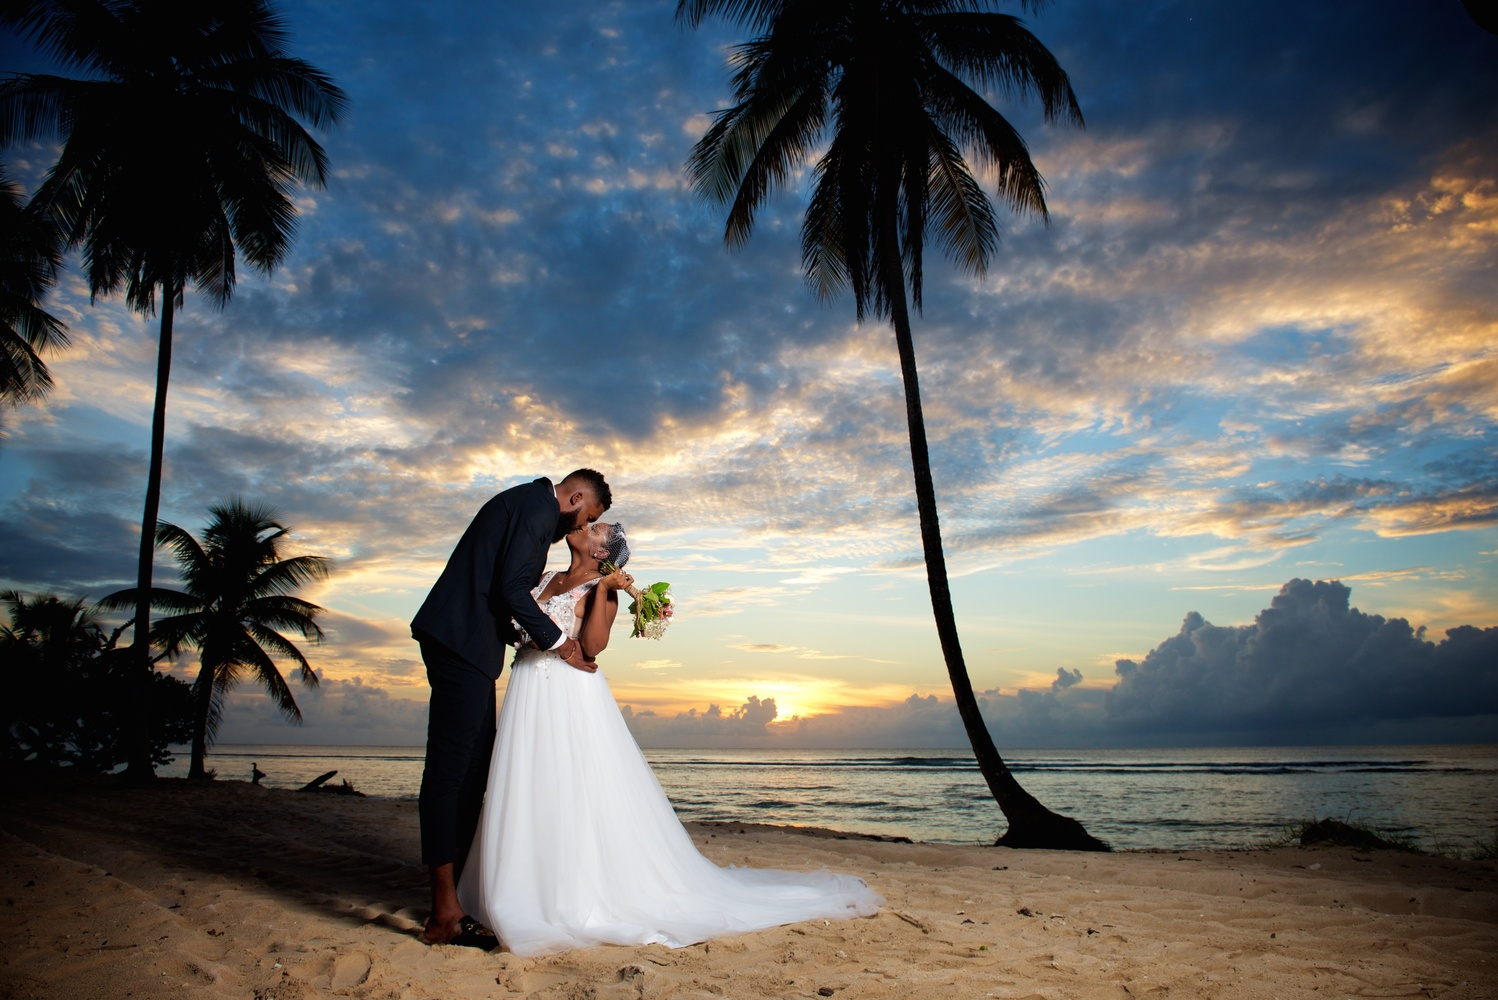 Tobago Beach Wedding by Paul Christopher T